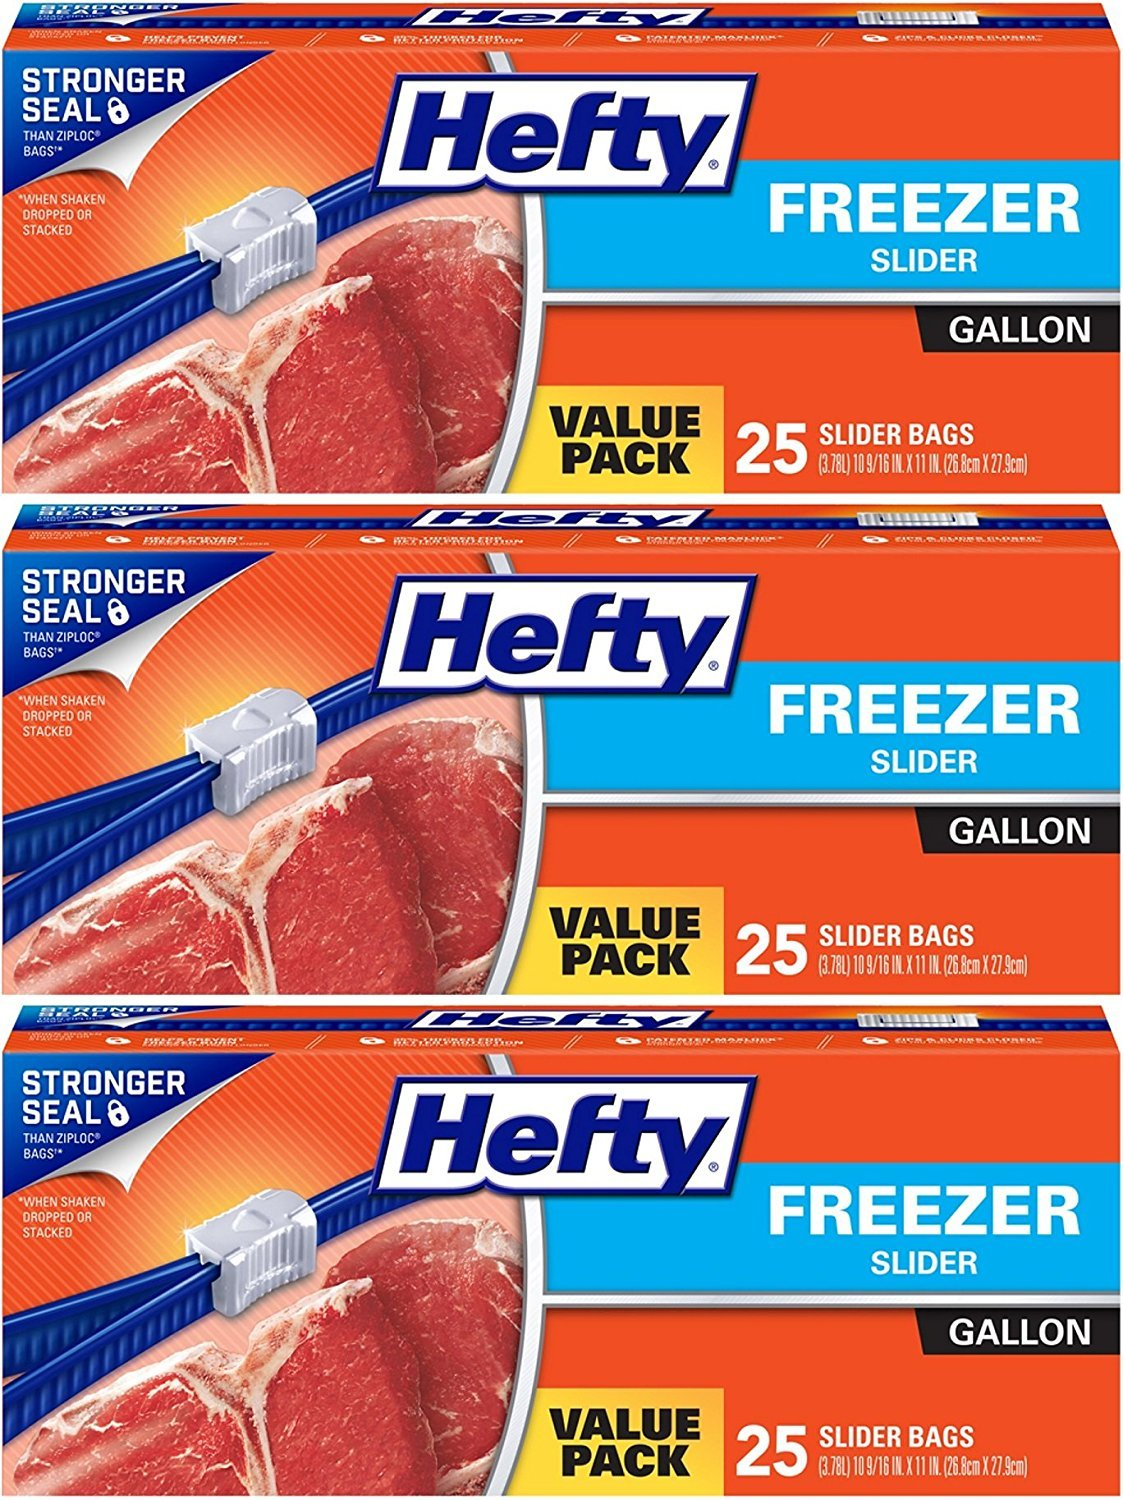 Hefty Slider Freezer Bags, Gallon, Value Pack, 25 Count (Pack of 3) 75 Bags Total